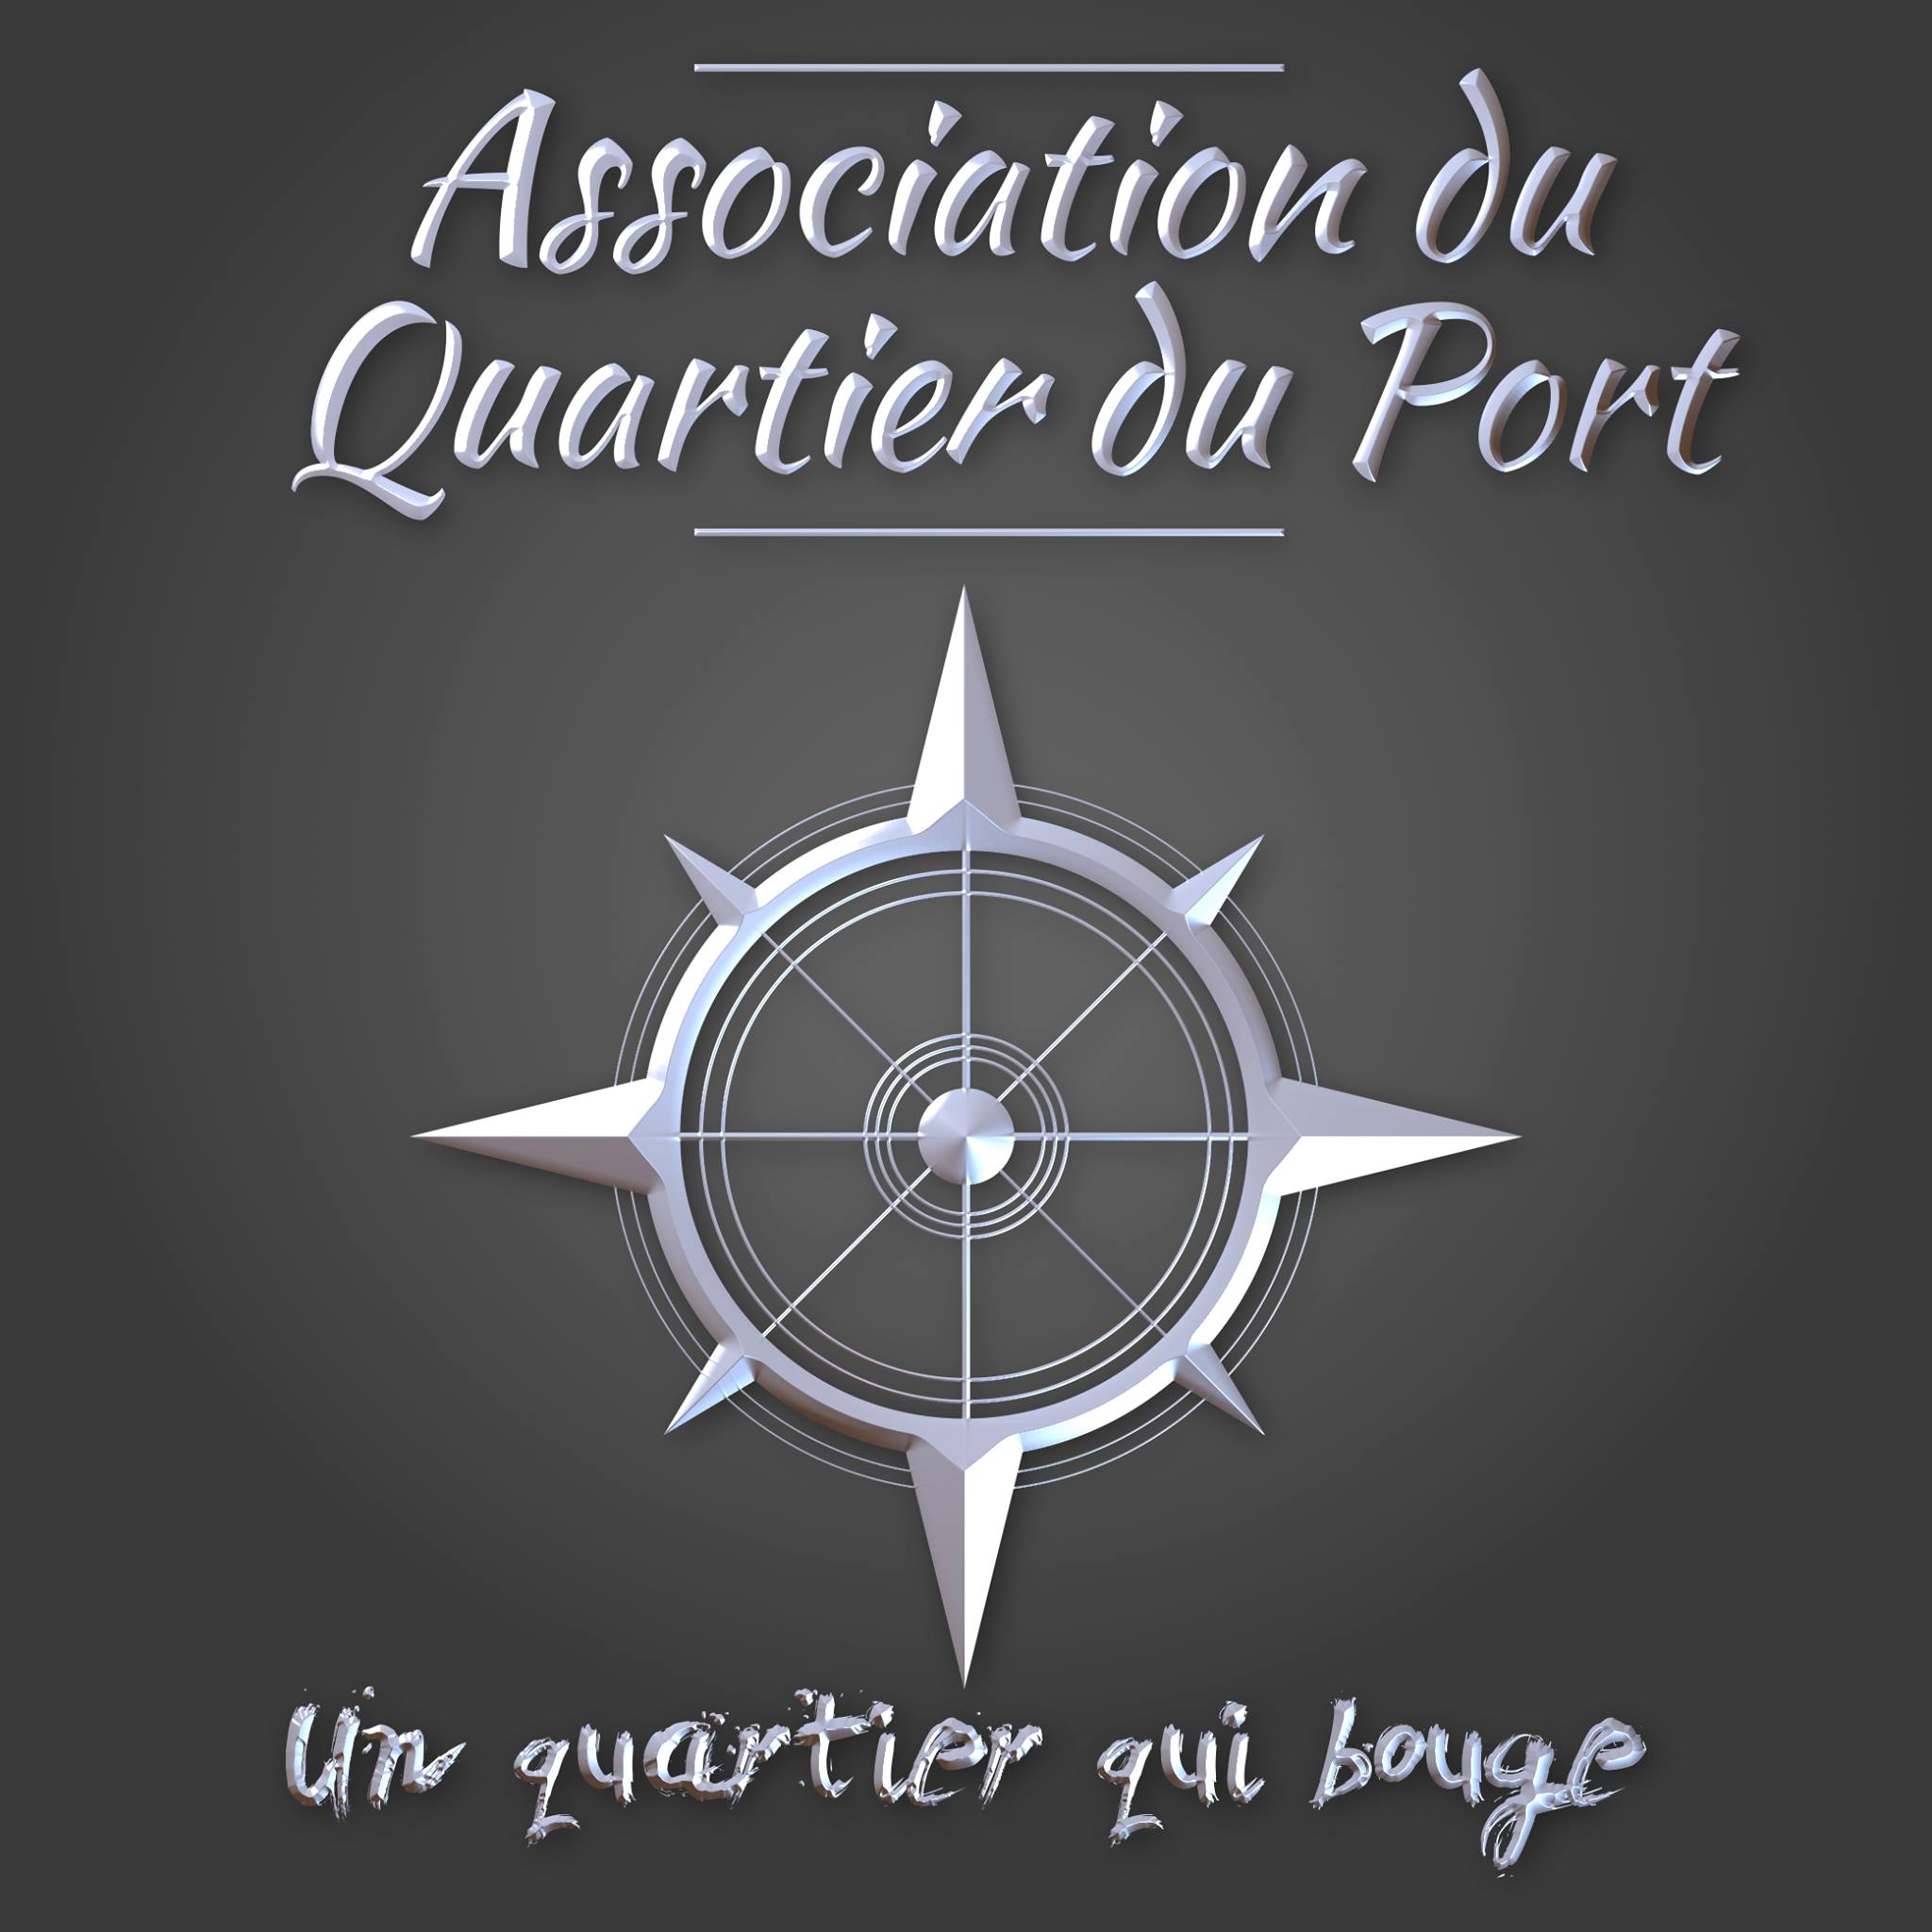 Association du Quartier du Port